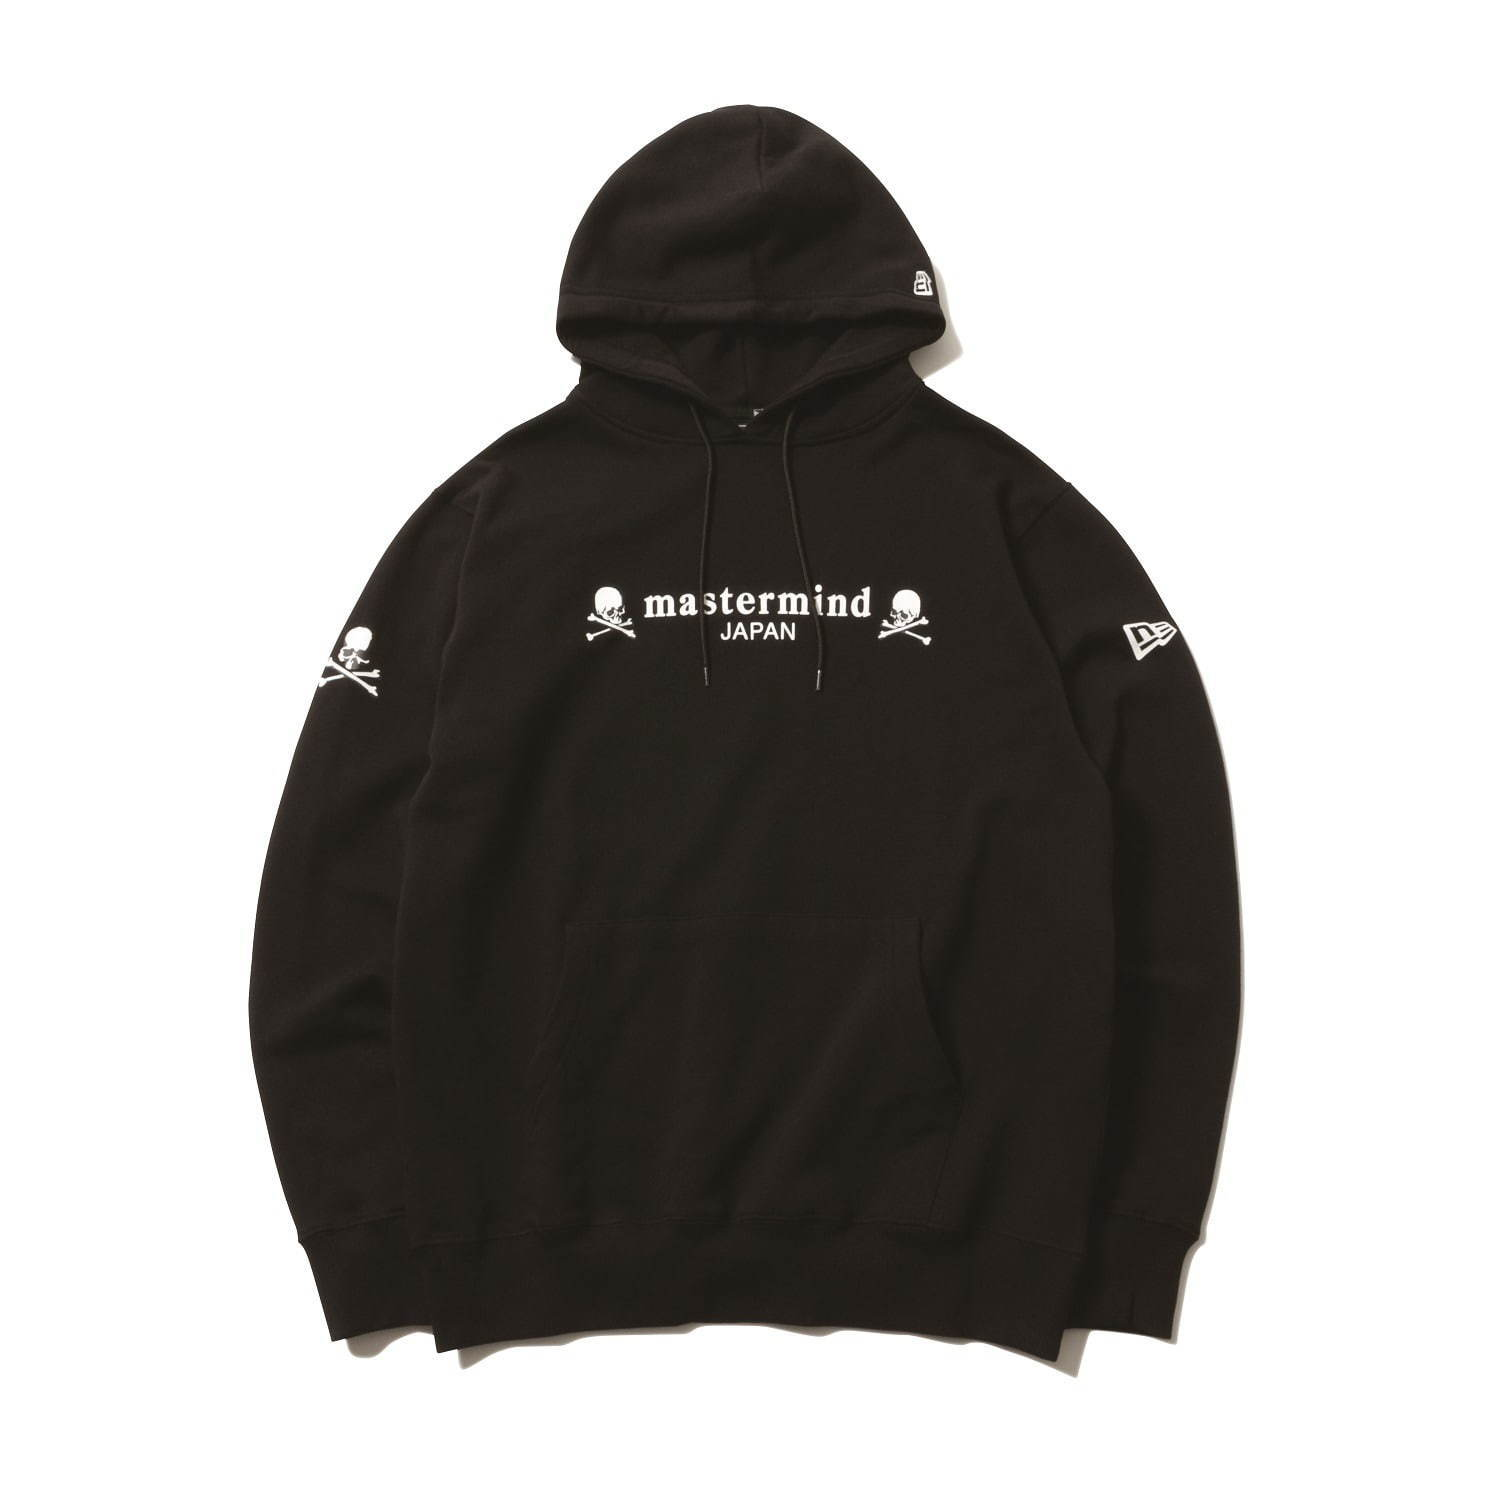 new-era-mastermind-japan-20ss-collaboration-release-20200525